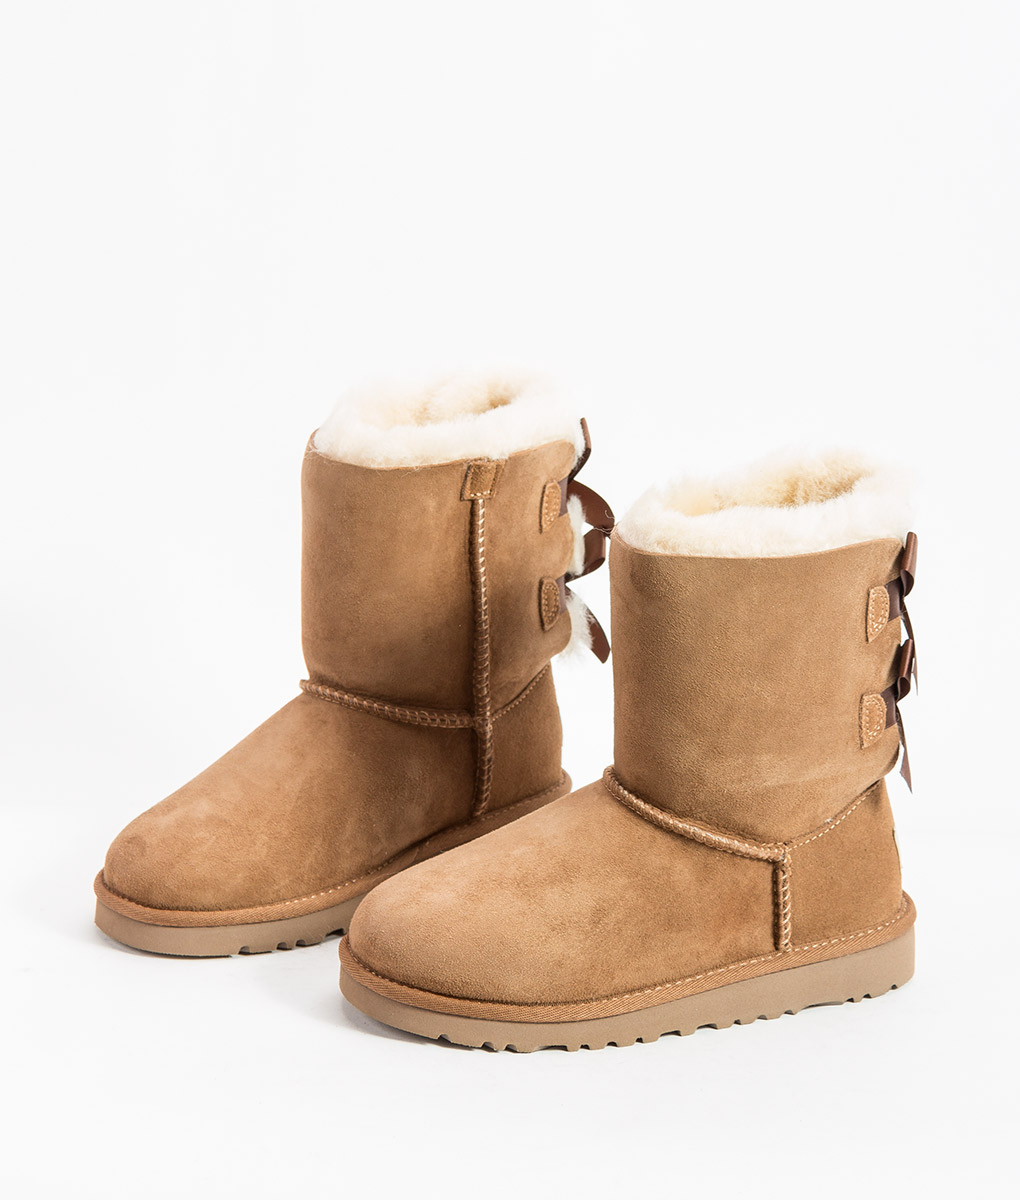 UGG Kids Ankle Boots BAILEY BOW, Chestnut 204.99 2